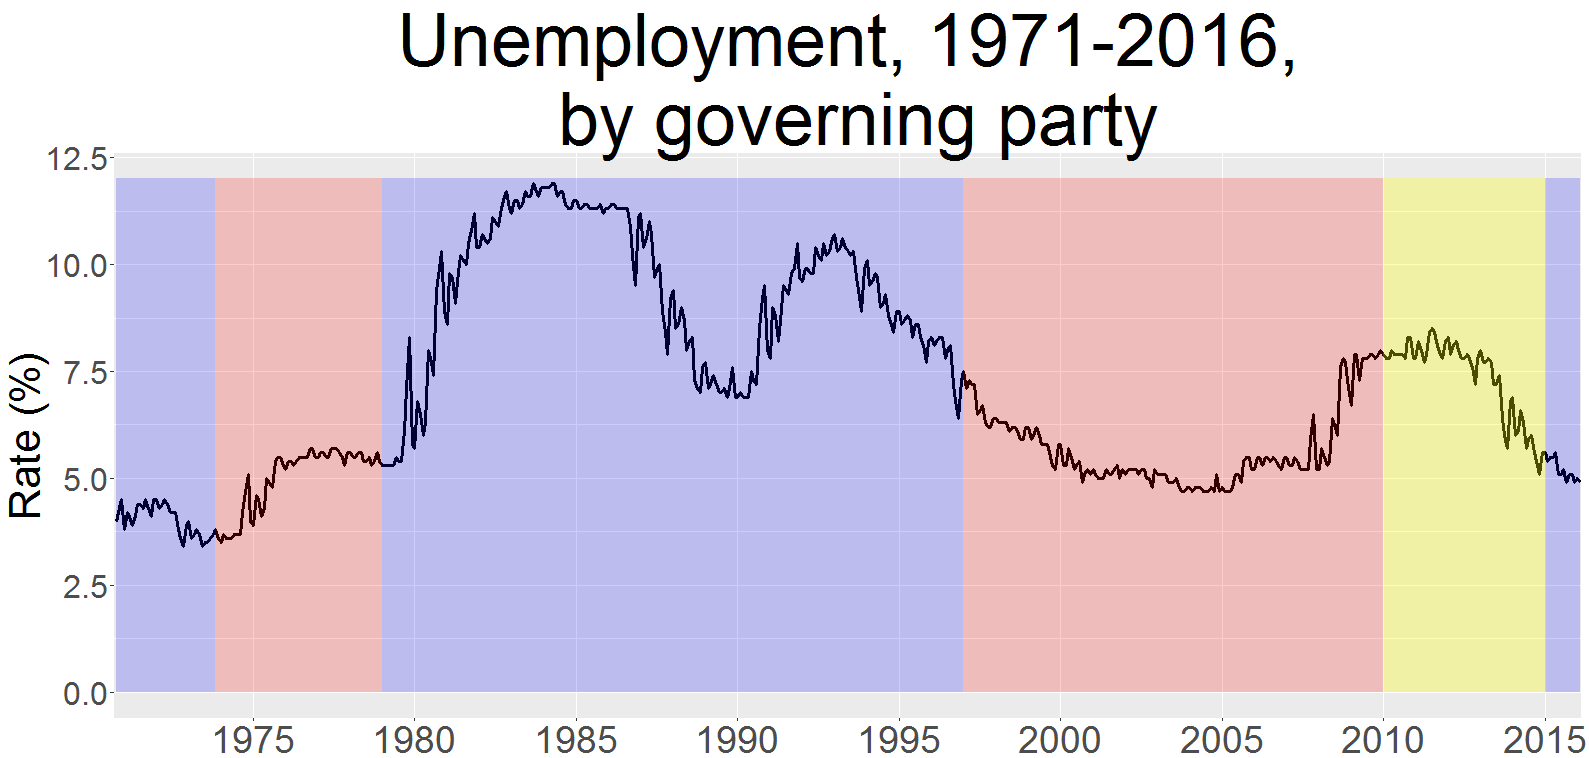 Is Unemployment Higher under Labour or the Conservatives?